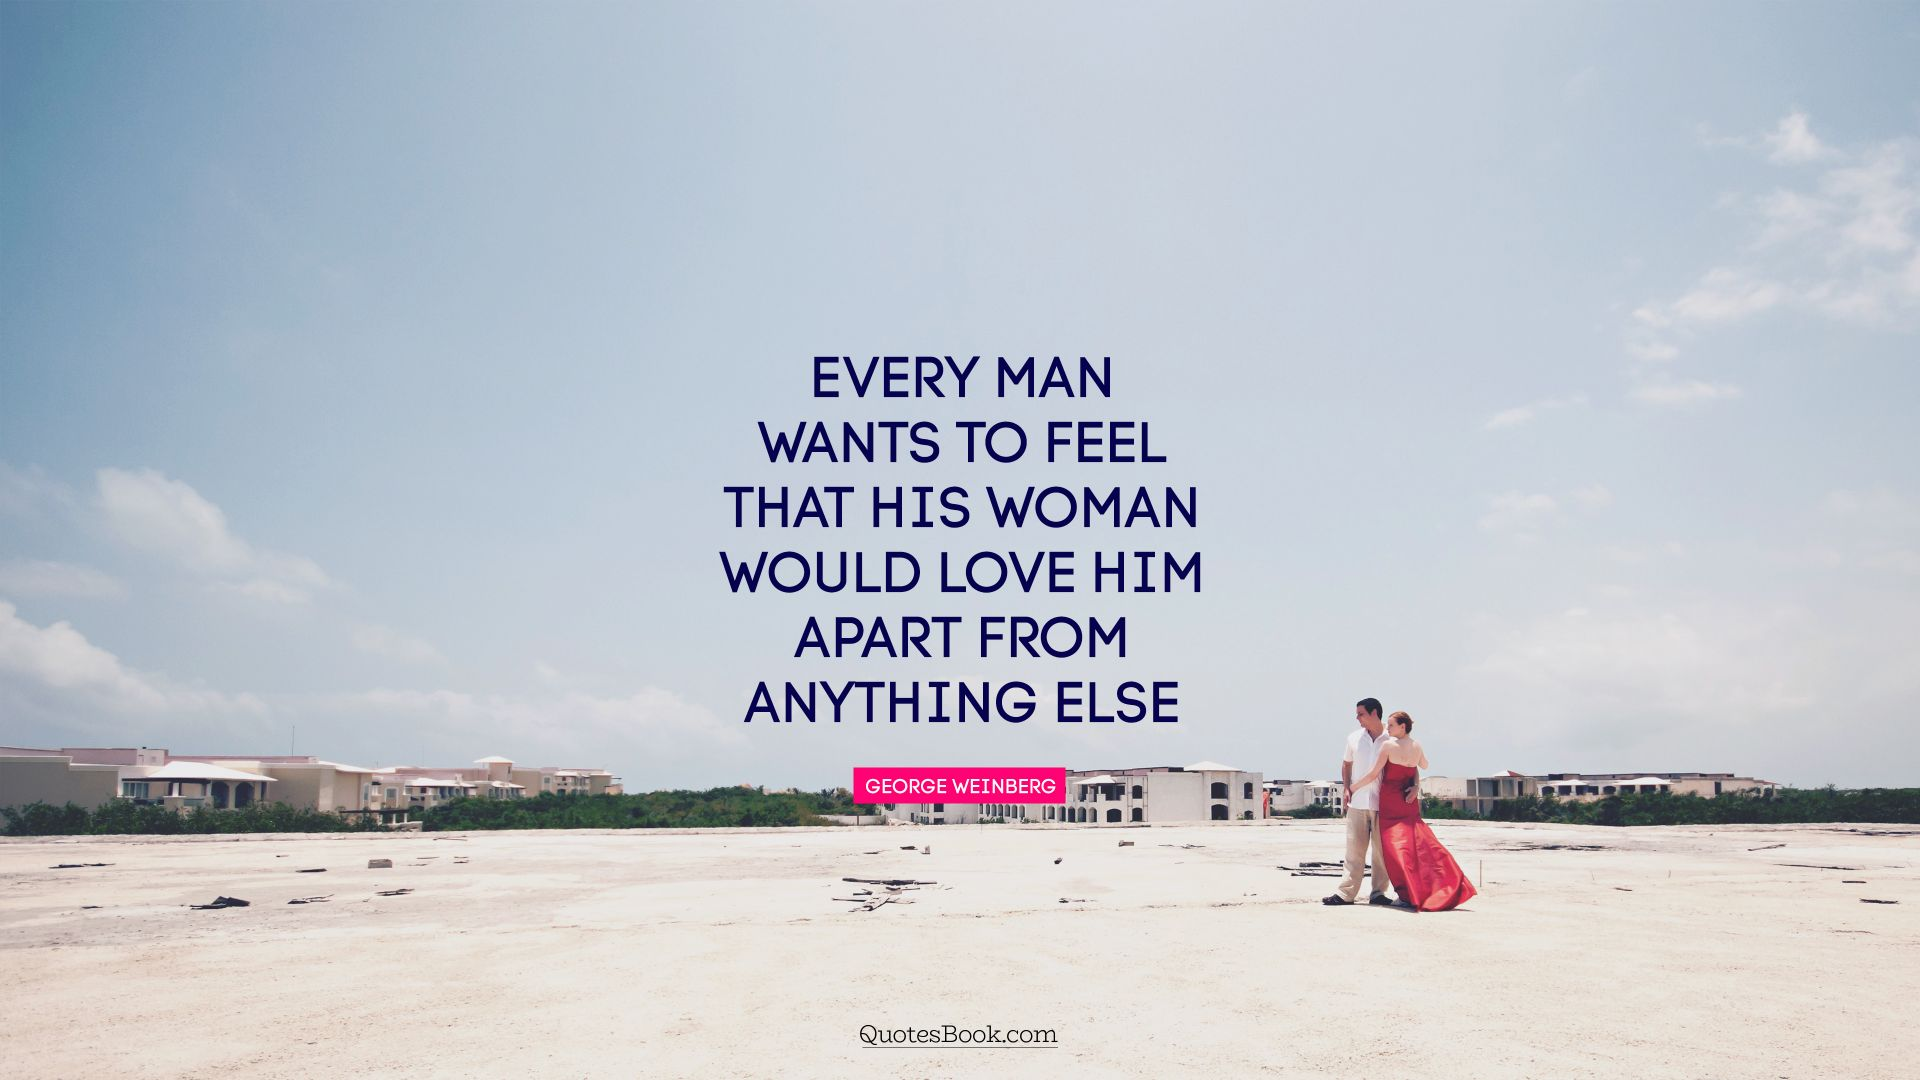 Every man wants to feel that his woman would love him apart from anything else. - Quote by George Weinberg